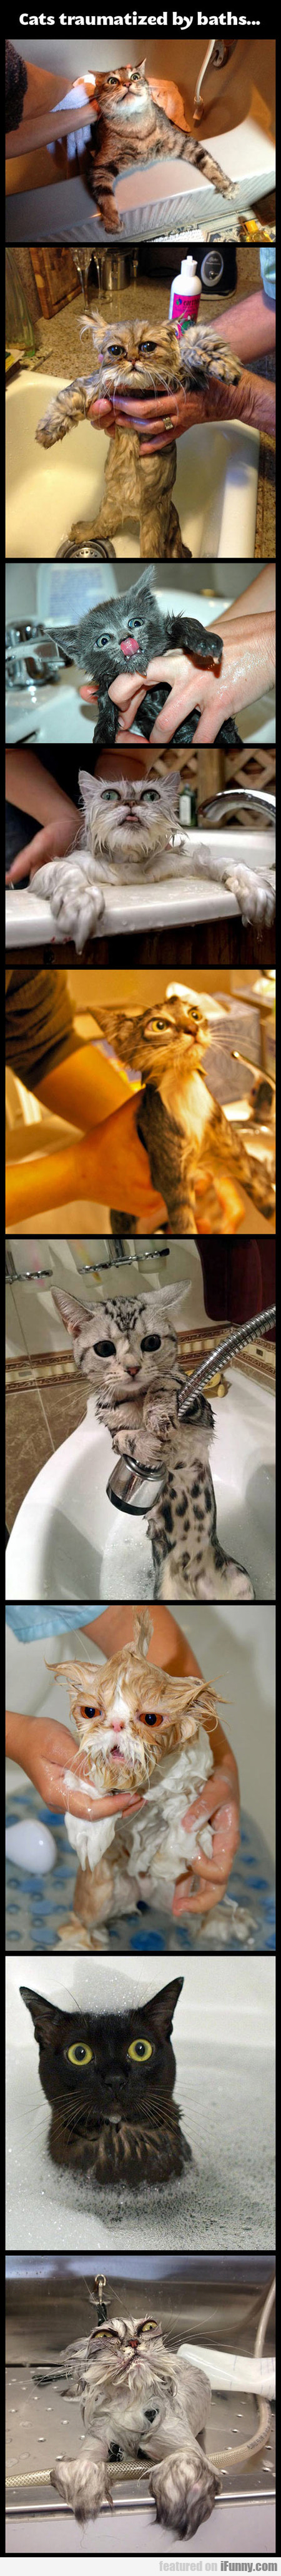 Cats Traumatized By Baths